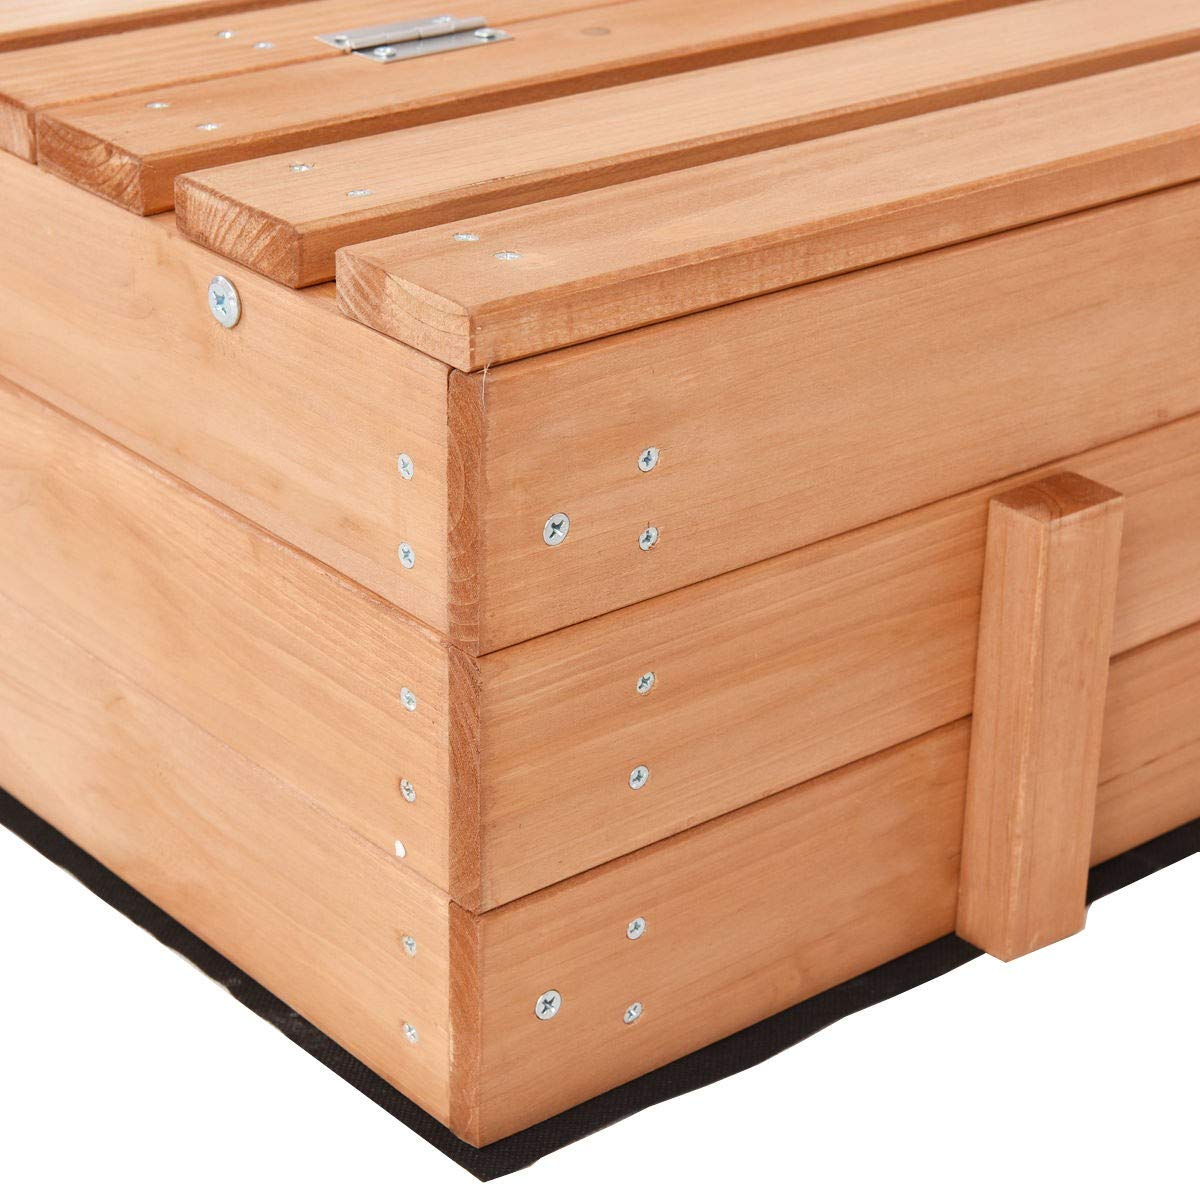 USA_BEST_SELLER Children Outdoor Foldable Retractable Sandbox Bench Seat Box by USA_BEST_SELLER (Image #9)